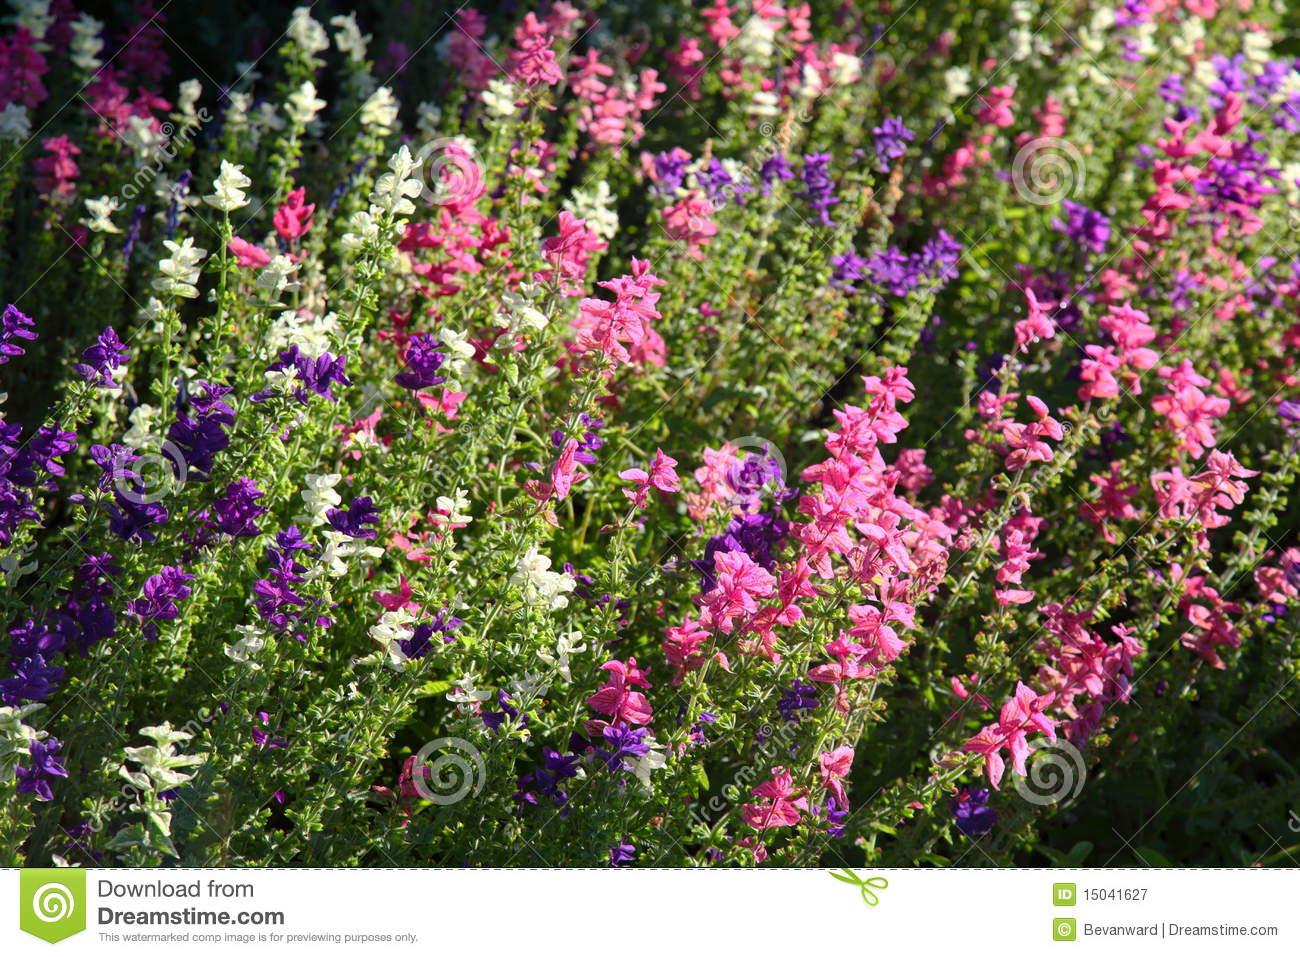 english country garden flowers stock image - image: 15041627